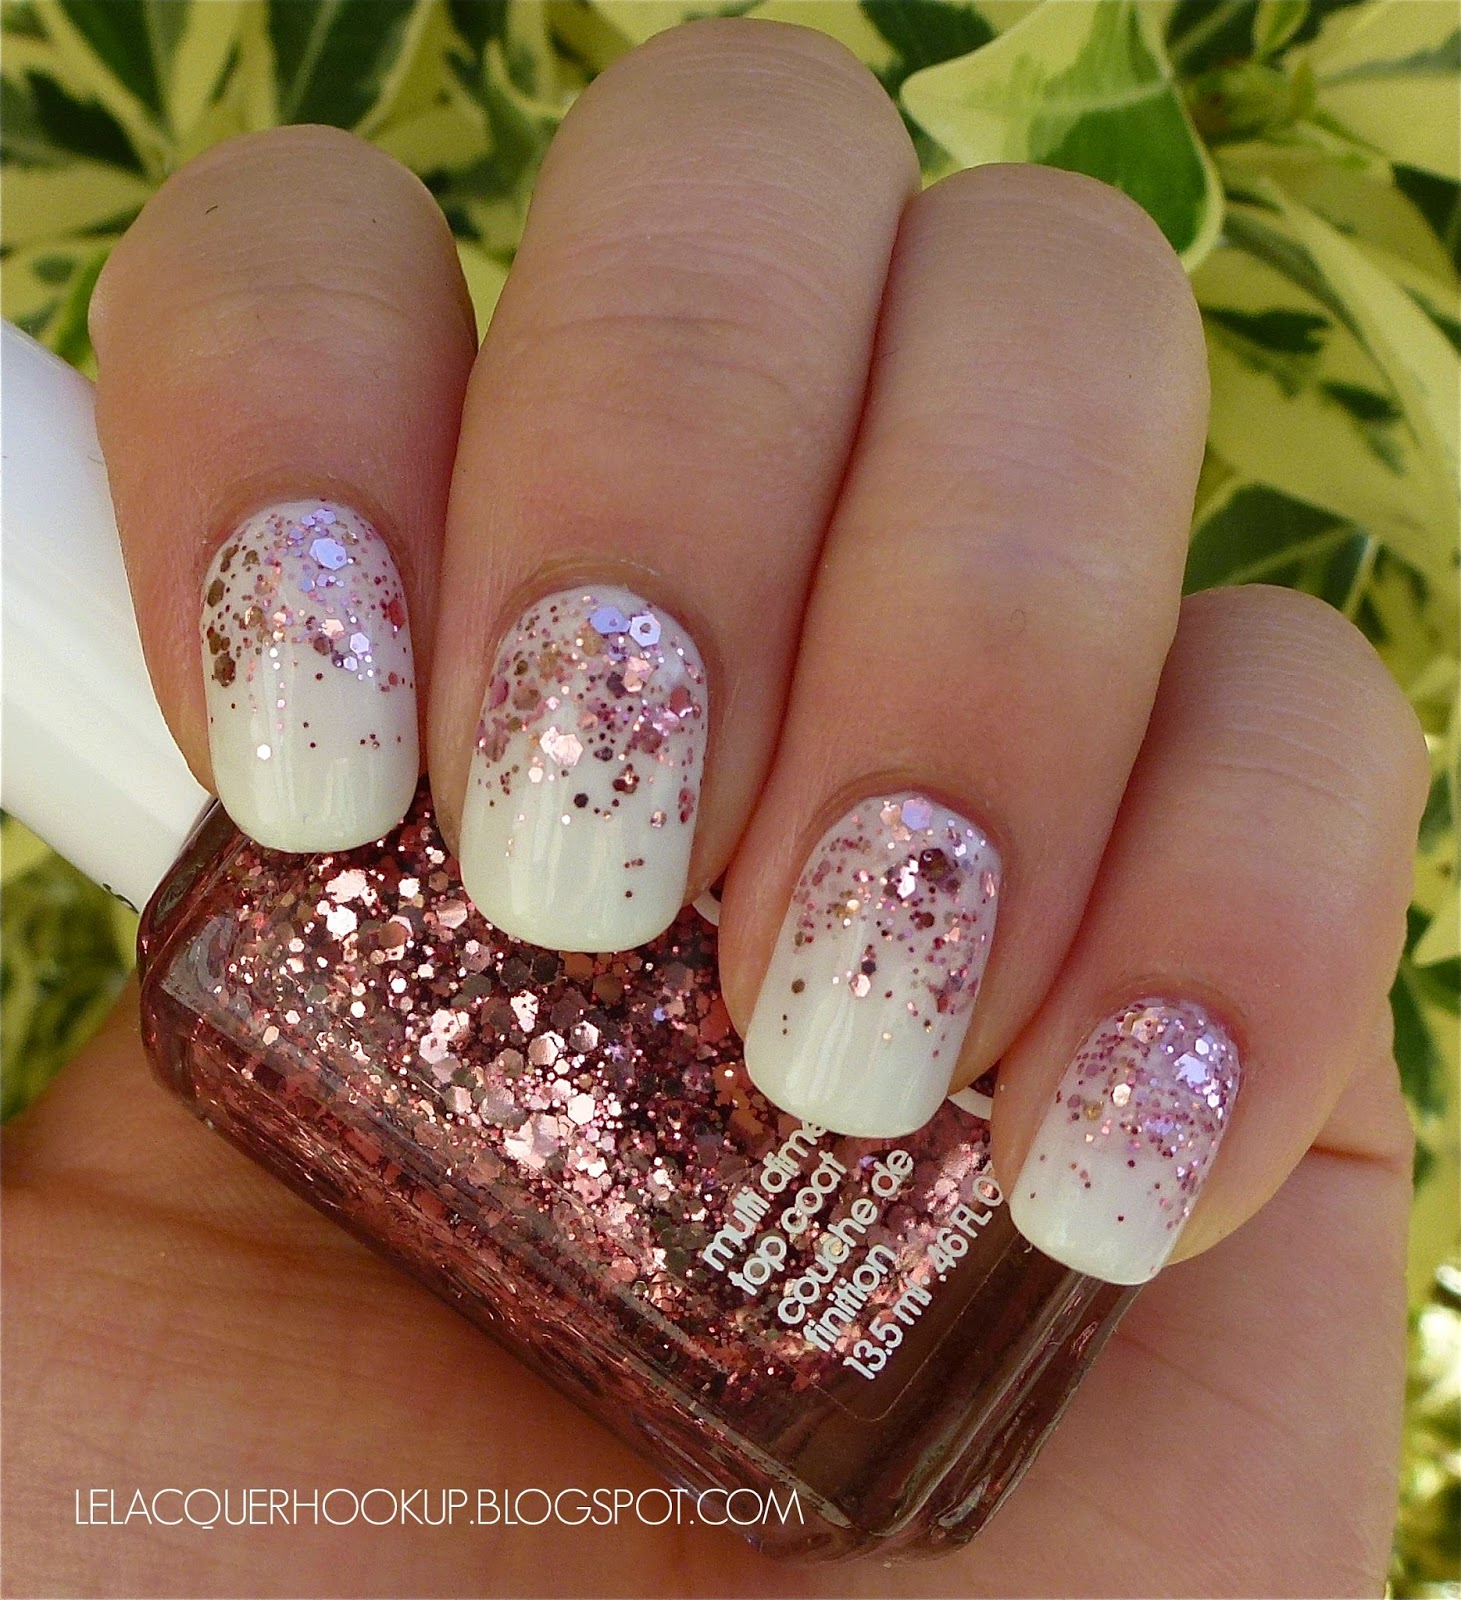 LE LACQUER HOOK UP: Essie Marshmallow + A Cut Above Essie A Cut Above Alone